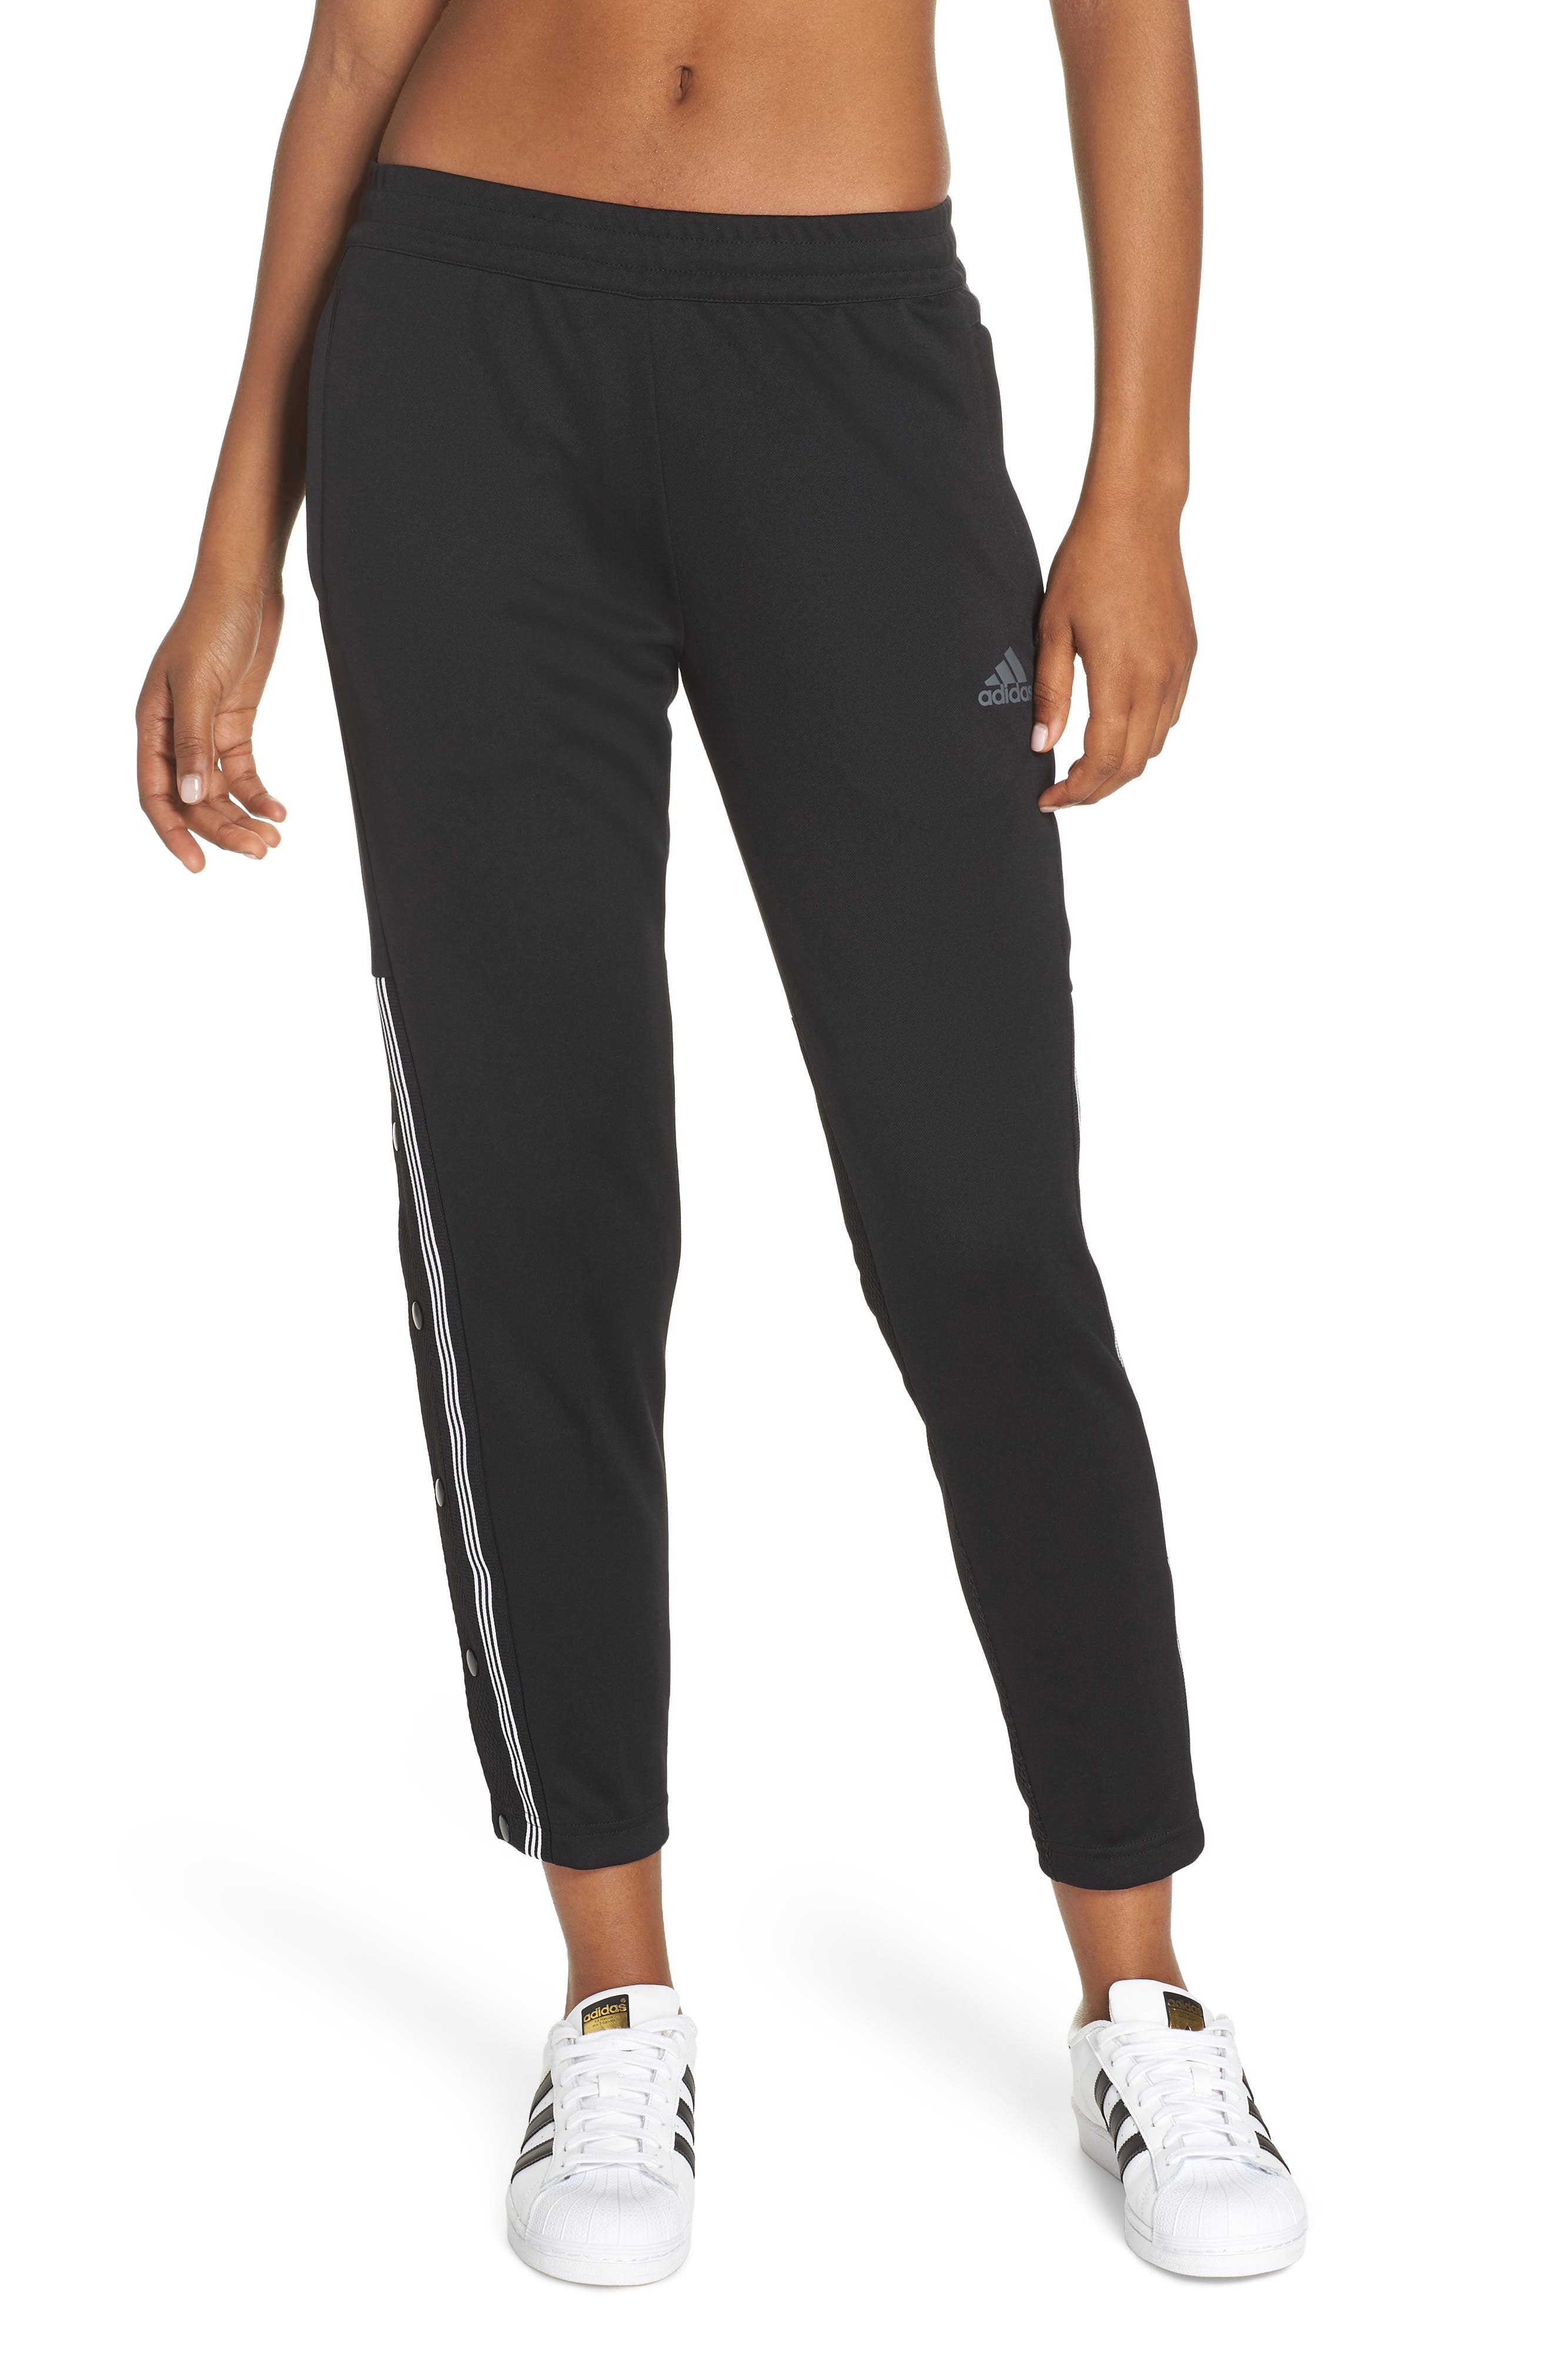 29c805f0a845 Pants adidas for Women  Clothing